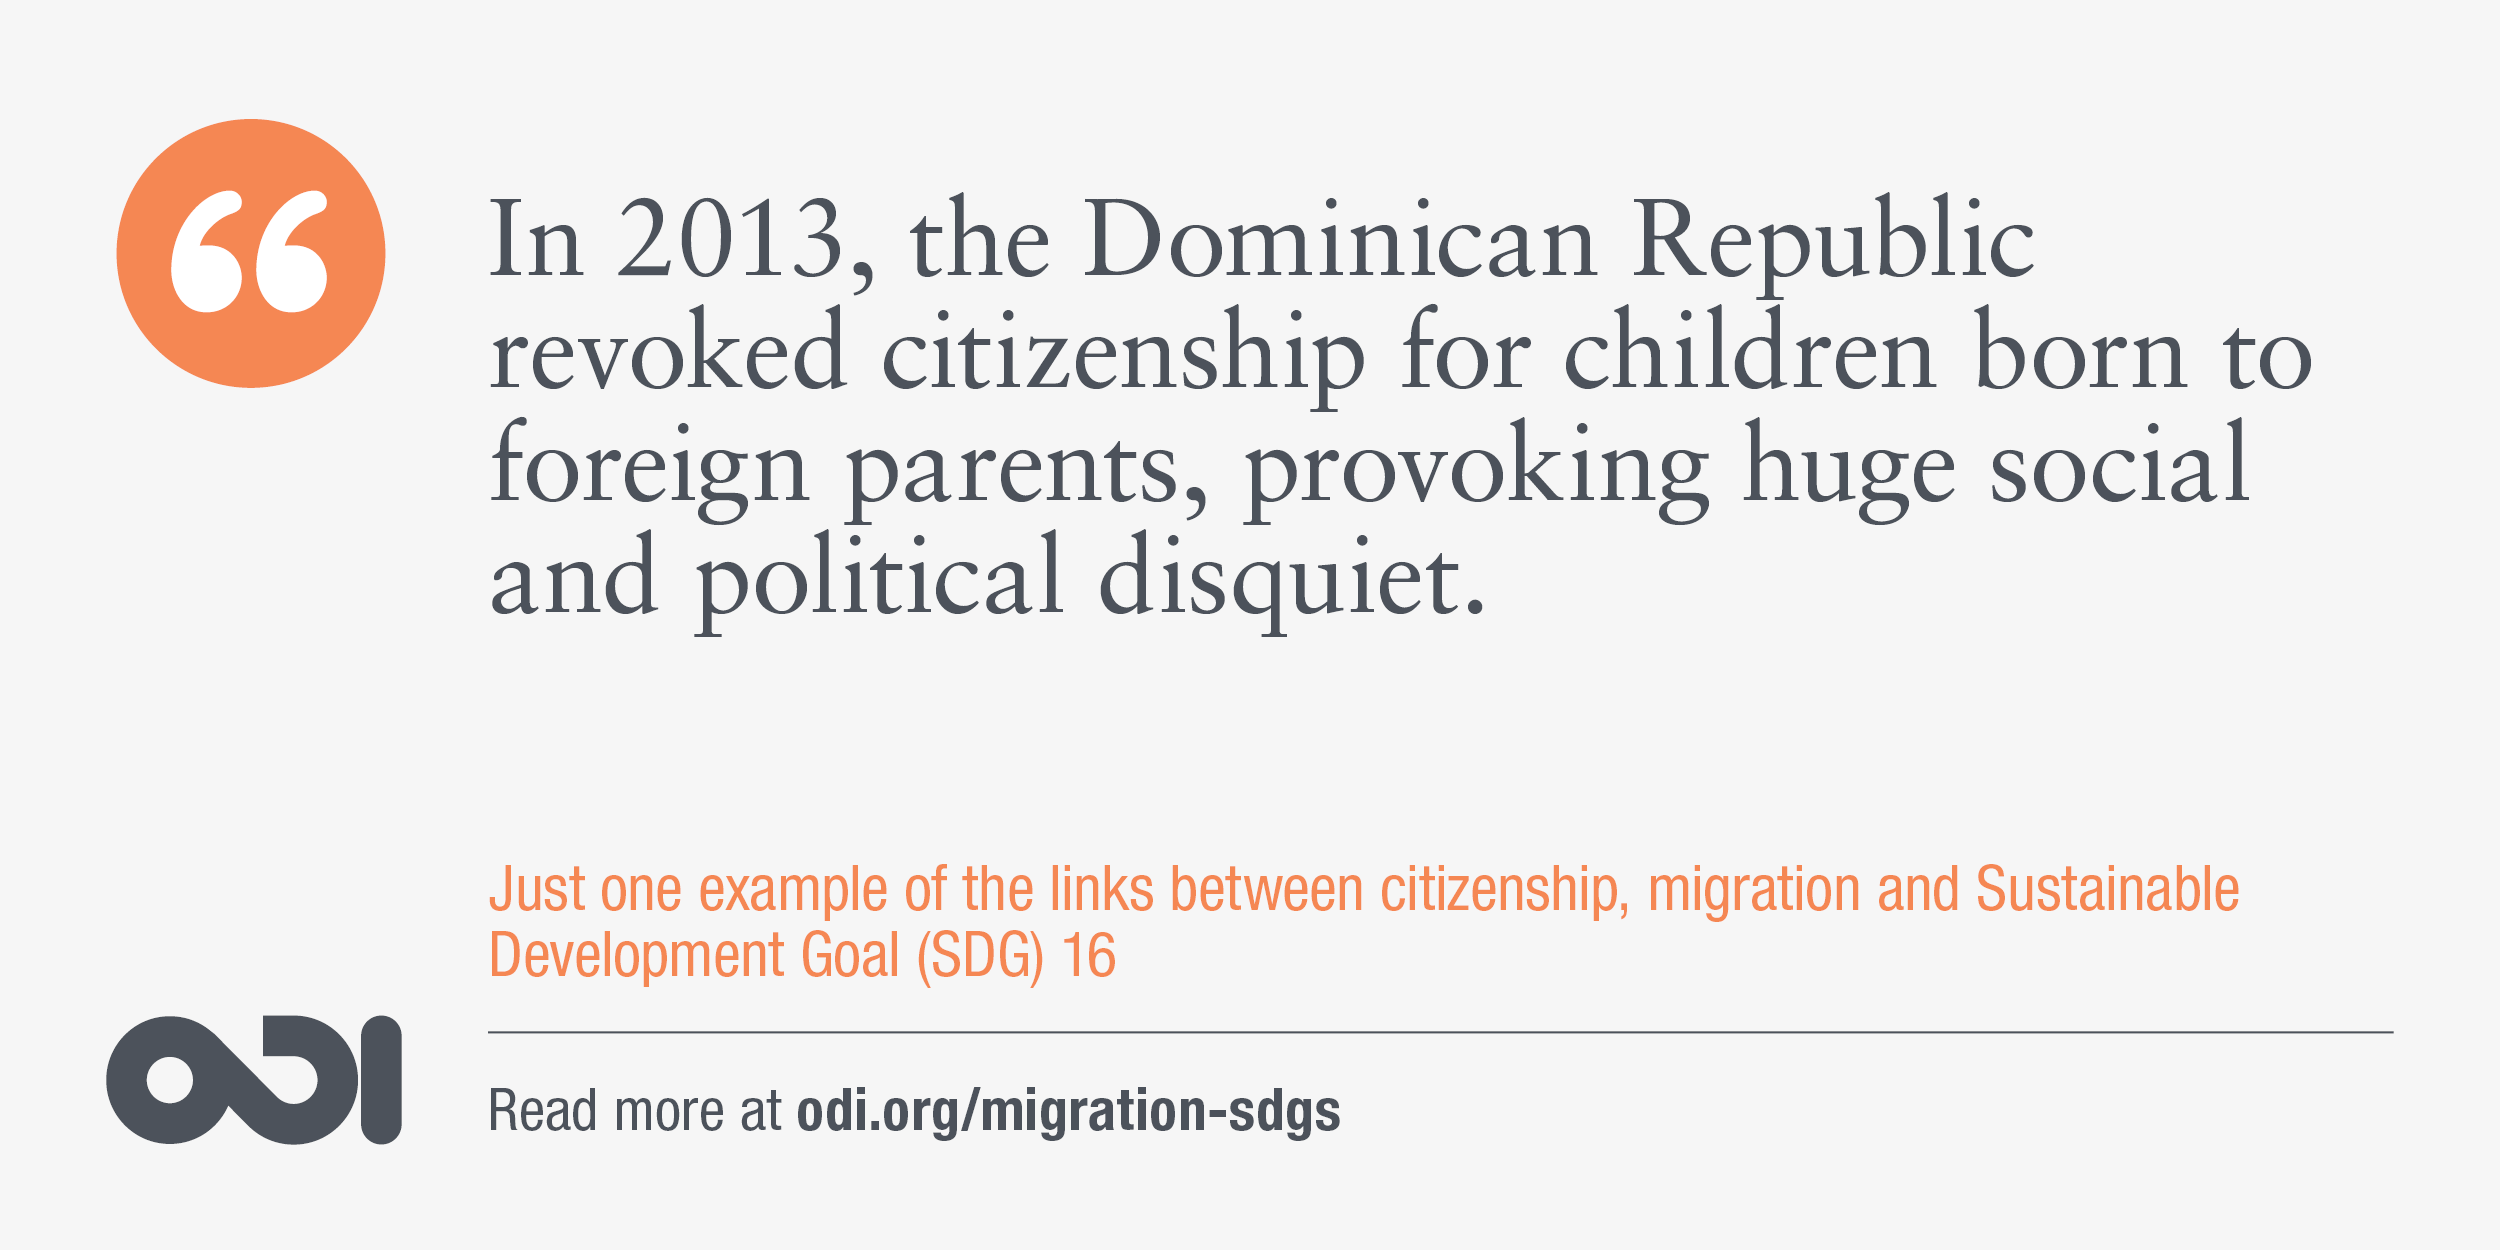 The links between citizenship, migration and SDG 16.